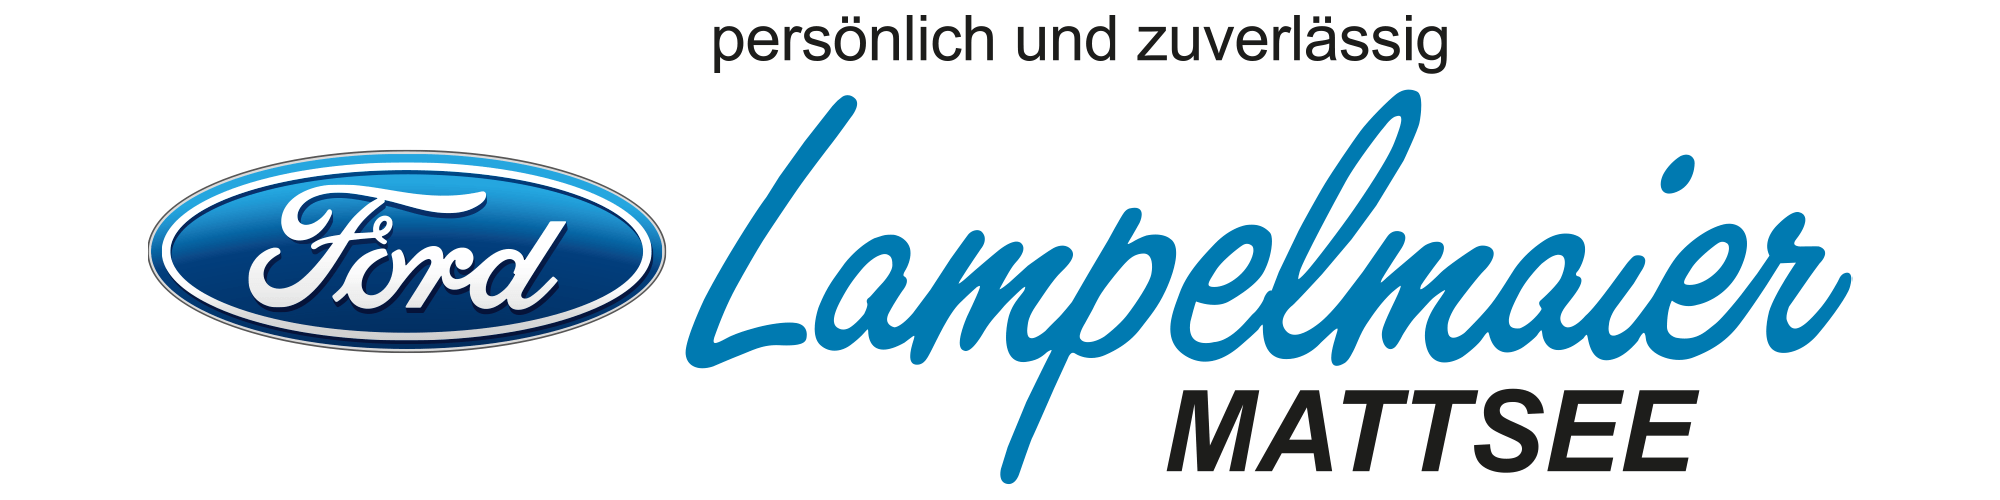 Ford Lampelmaier in Mattsee - Logo